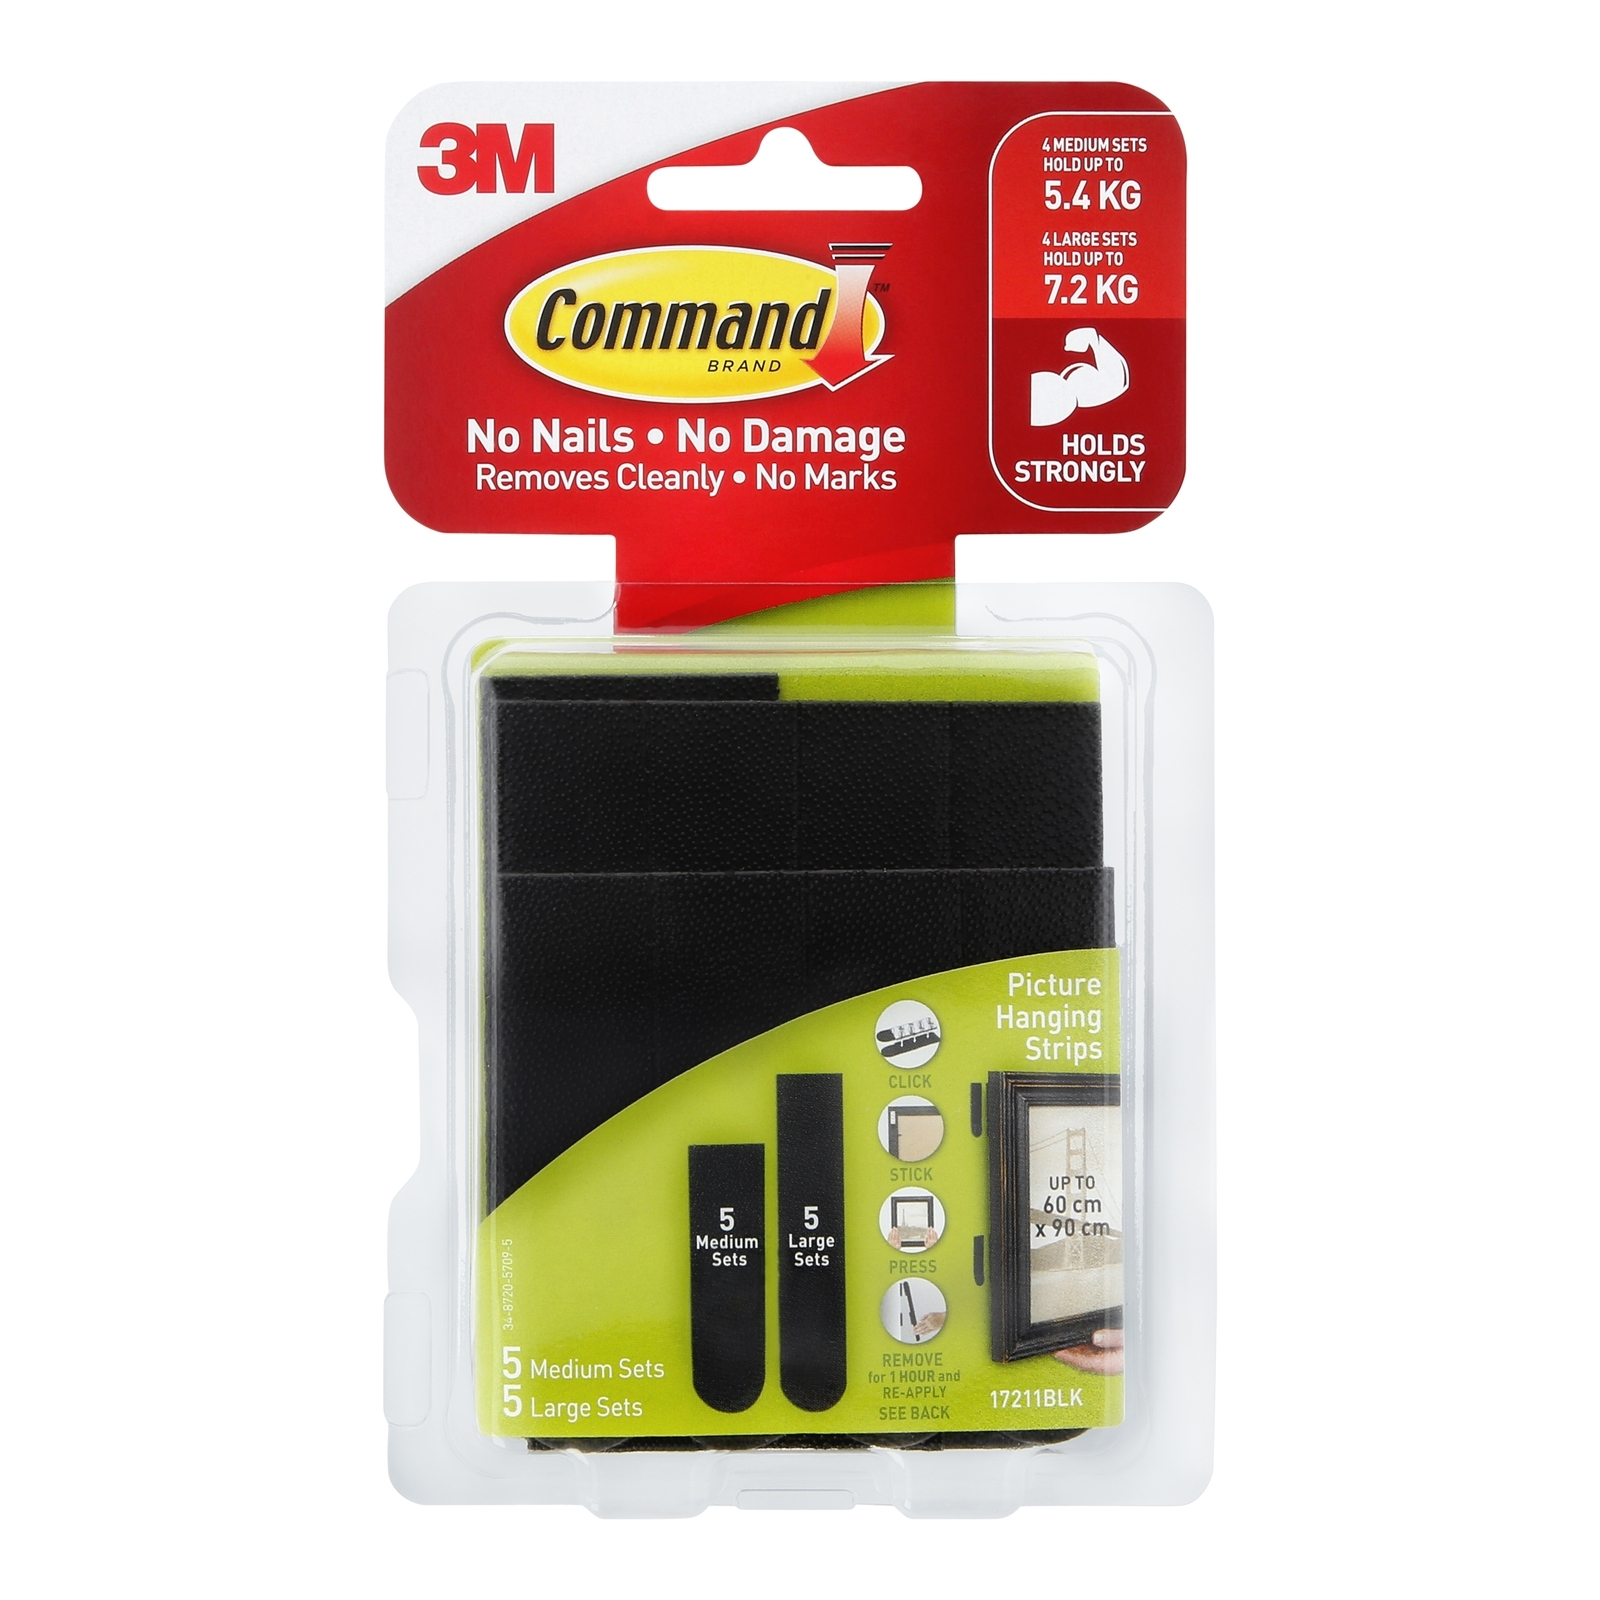 Command™ Medium / Large Black Adhesive Picture Hanging Strips Value Pack - 10 Pack